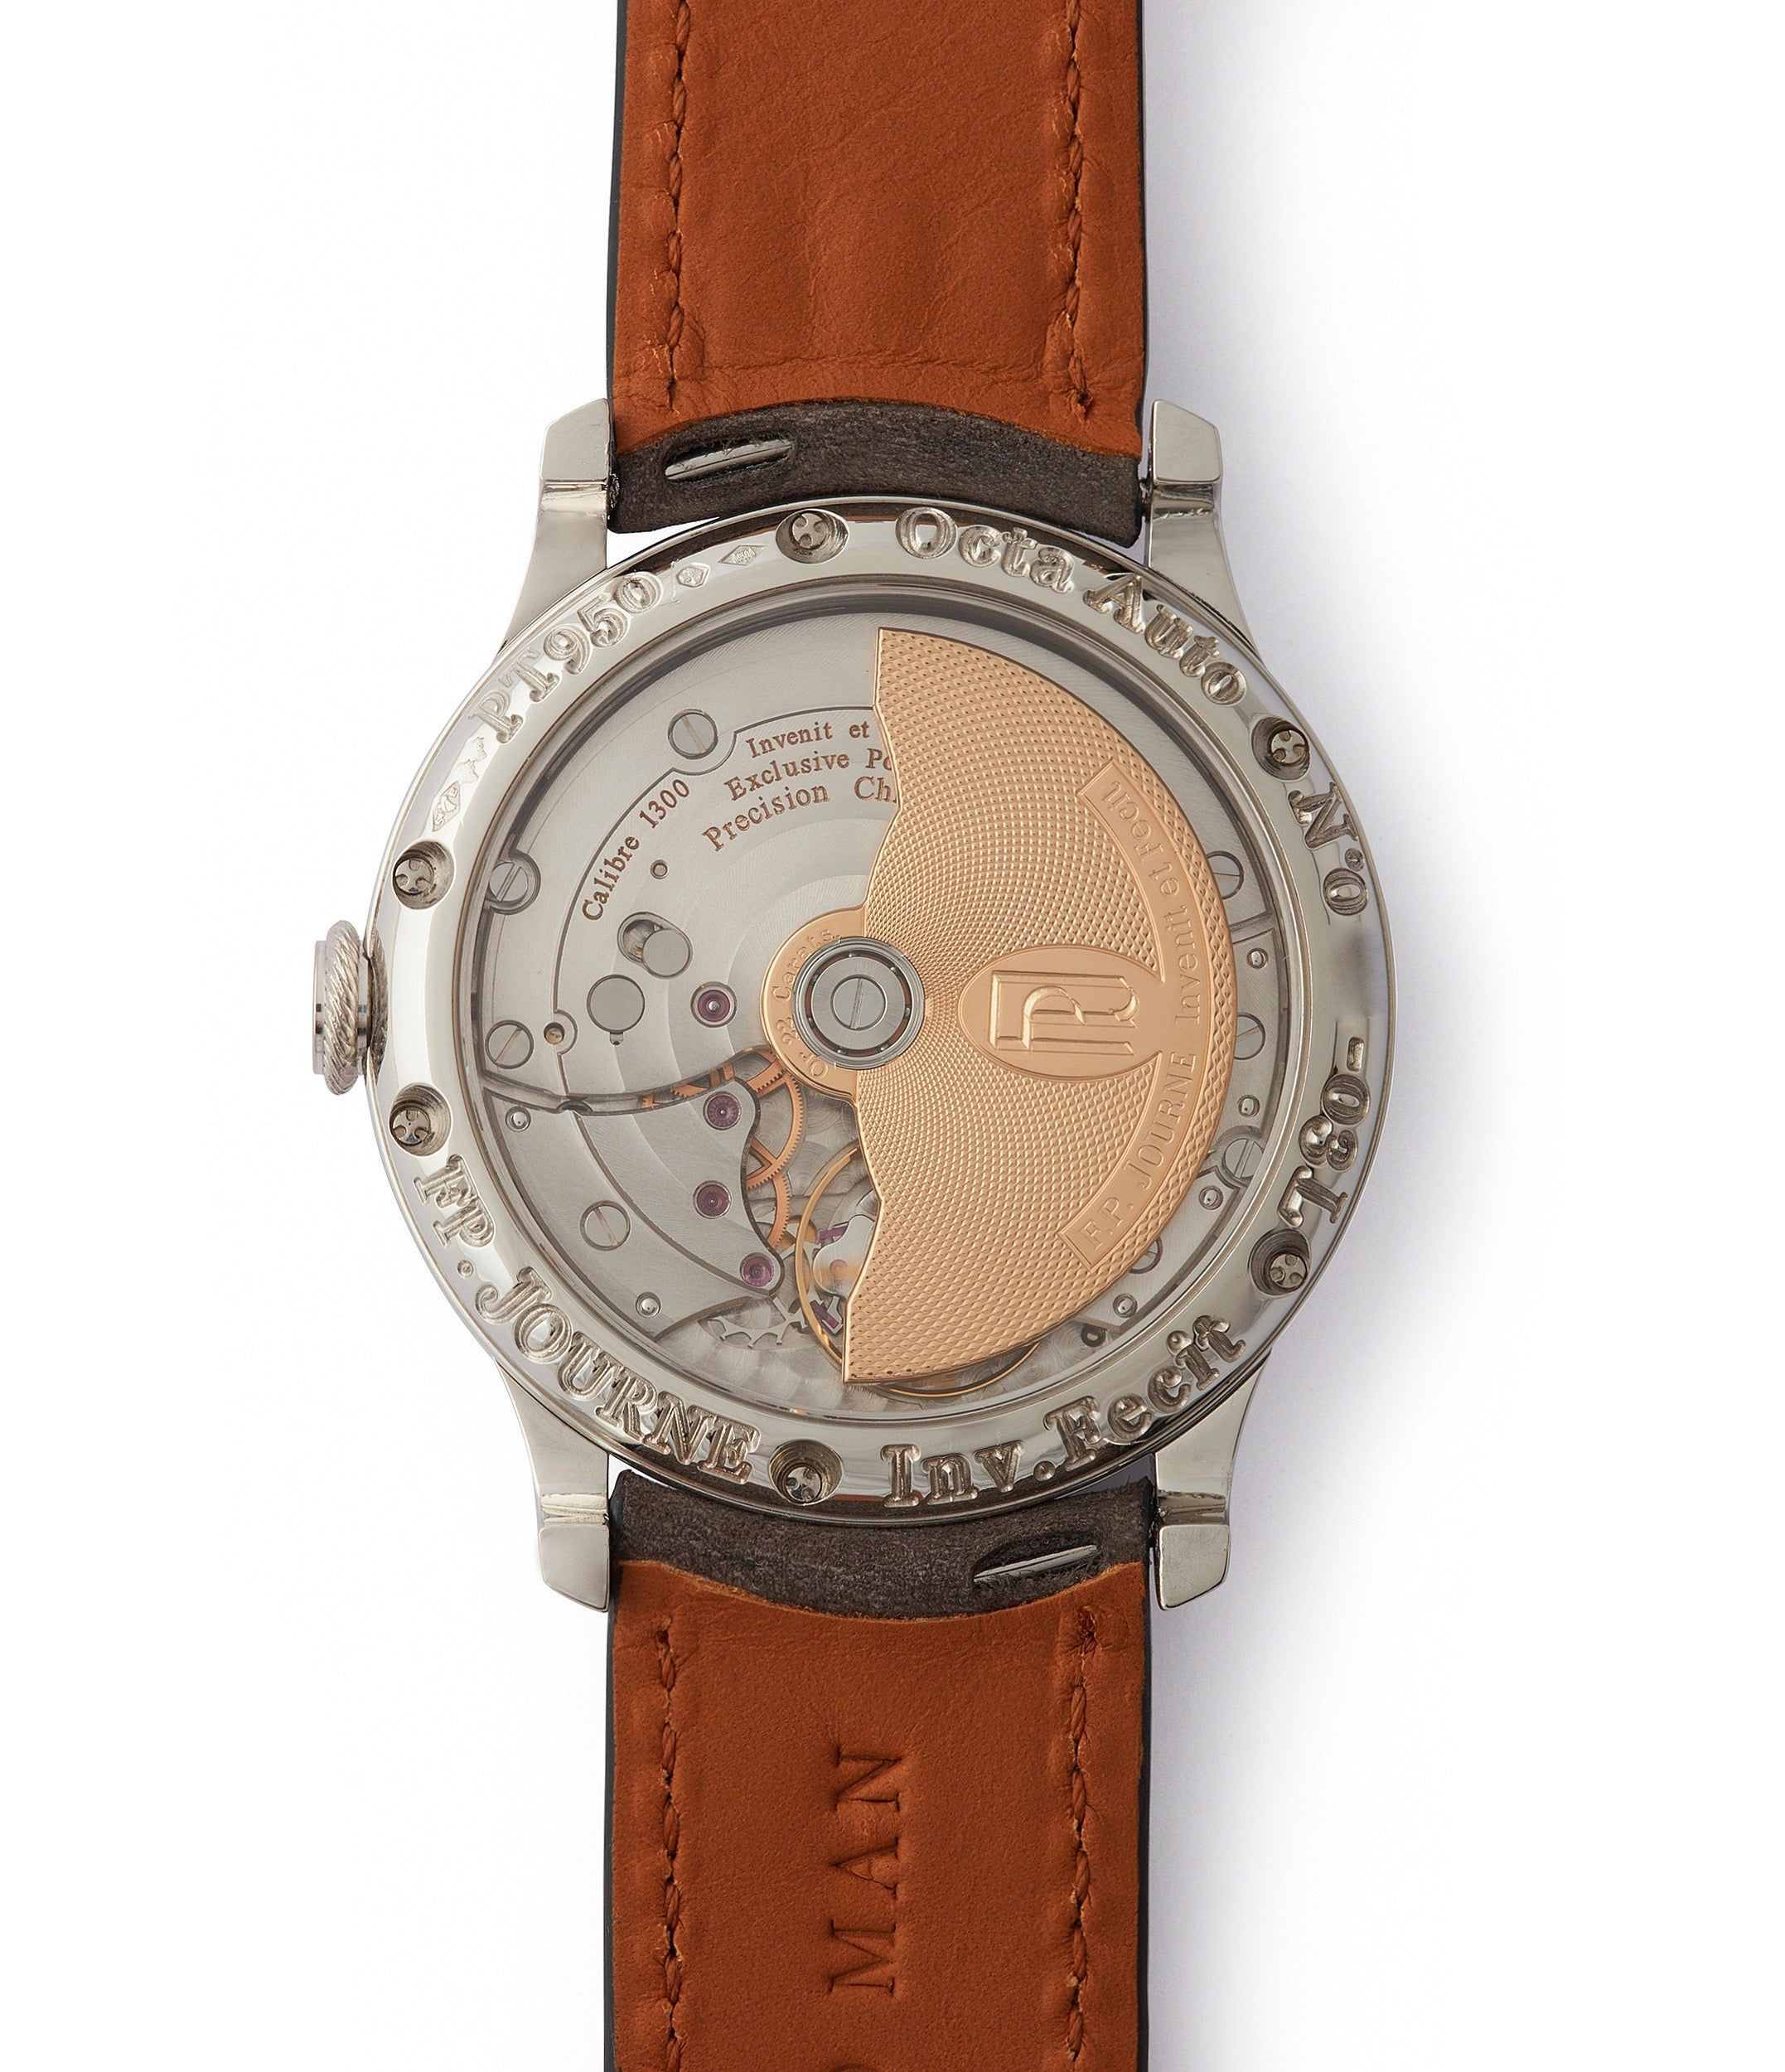 brass movement early F. P. Journe Octa Lune 38mm platinum independent watchmaker for sale online at A Collected Man London